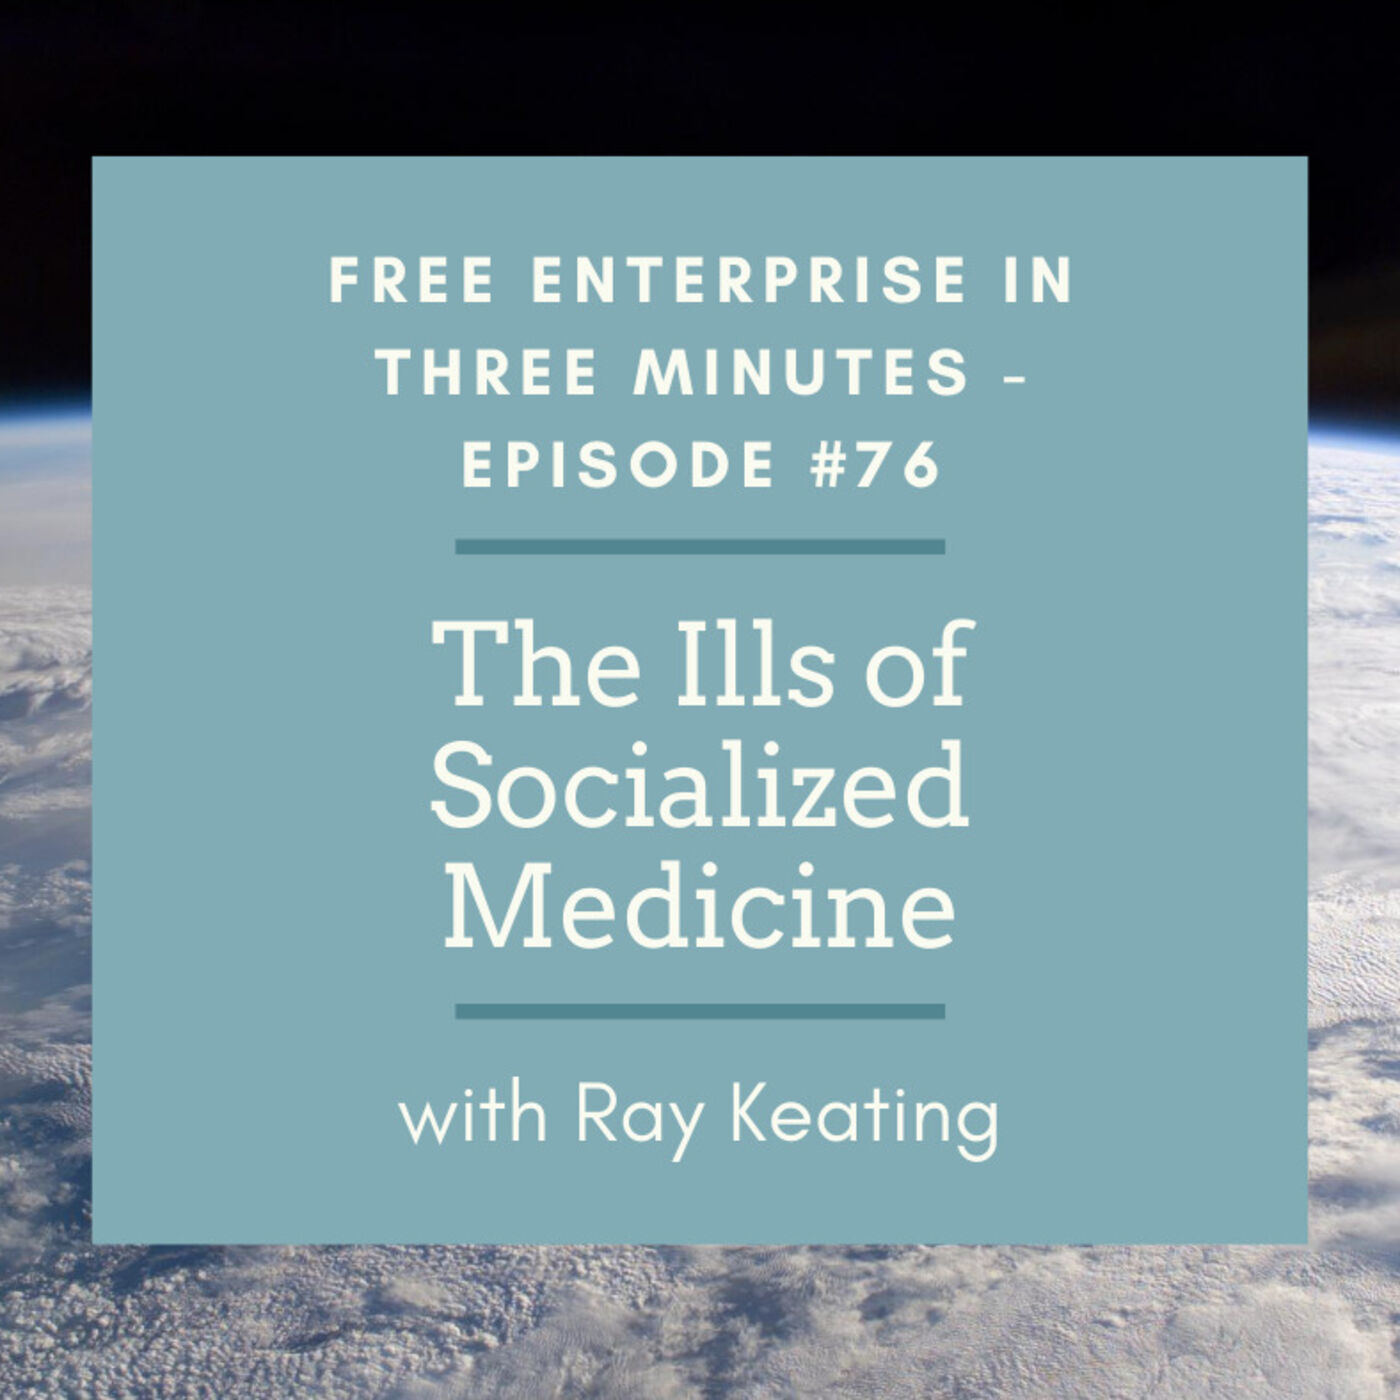 Episode #76: The Ills of Socialized Medicine